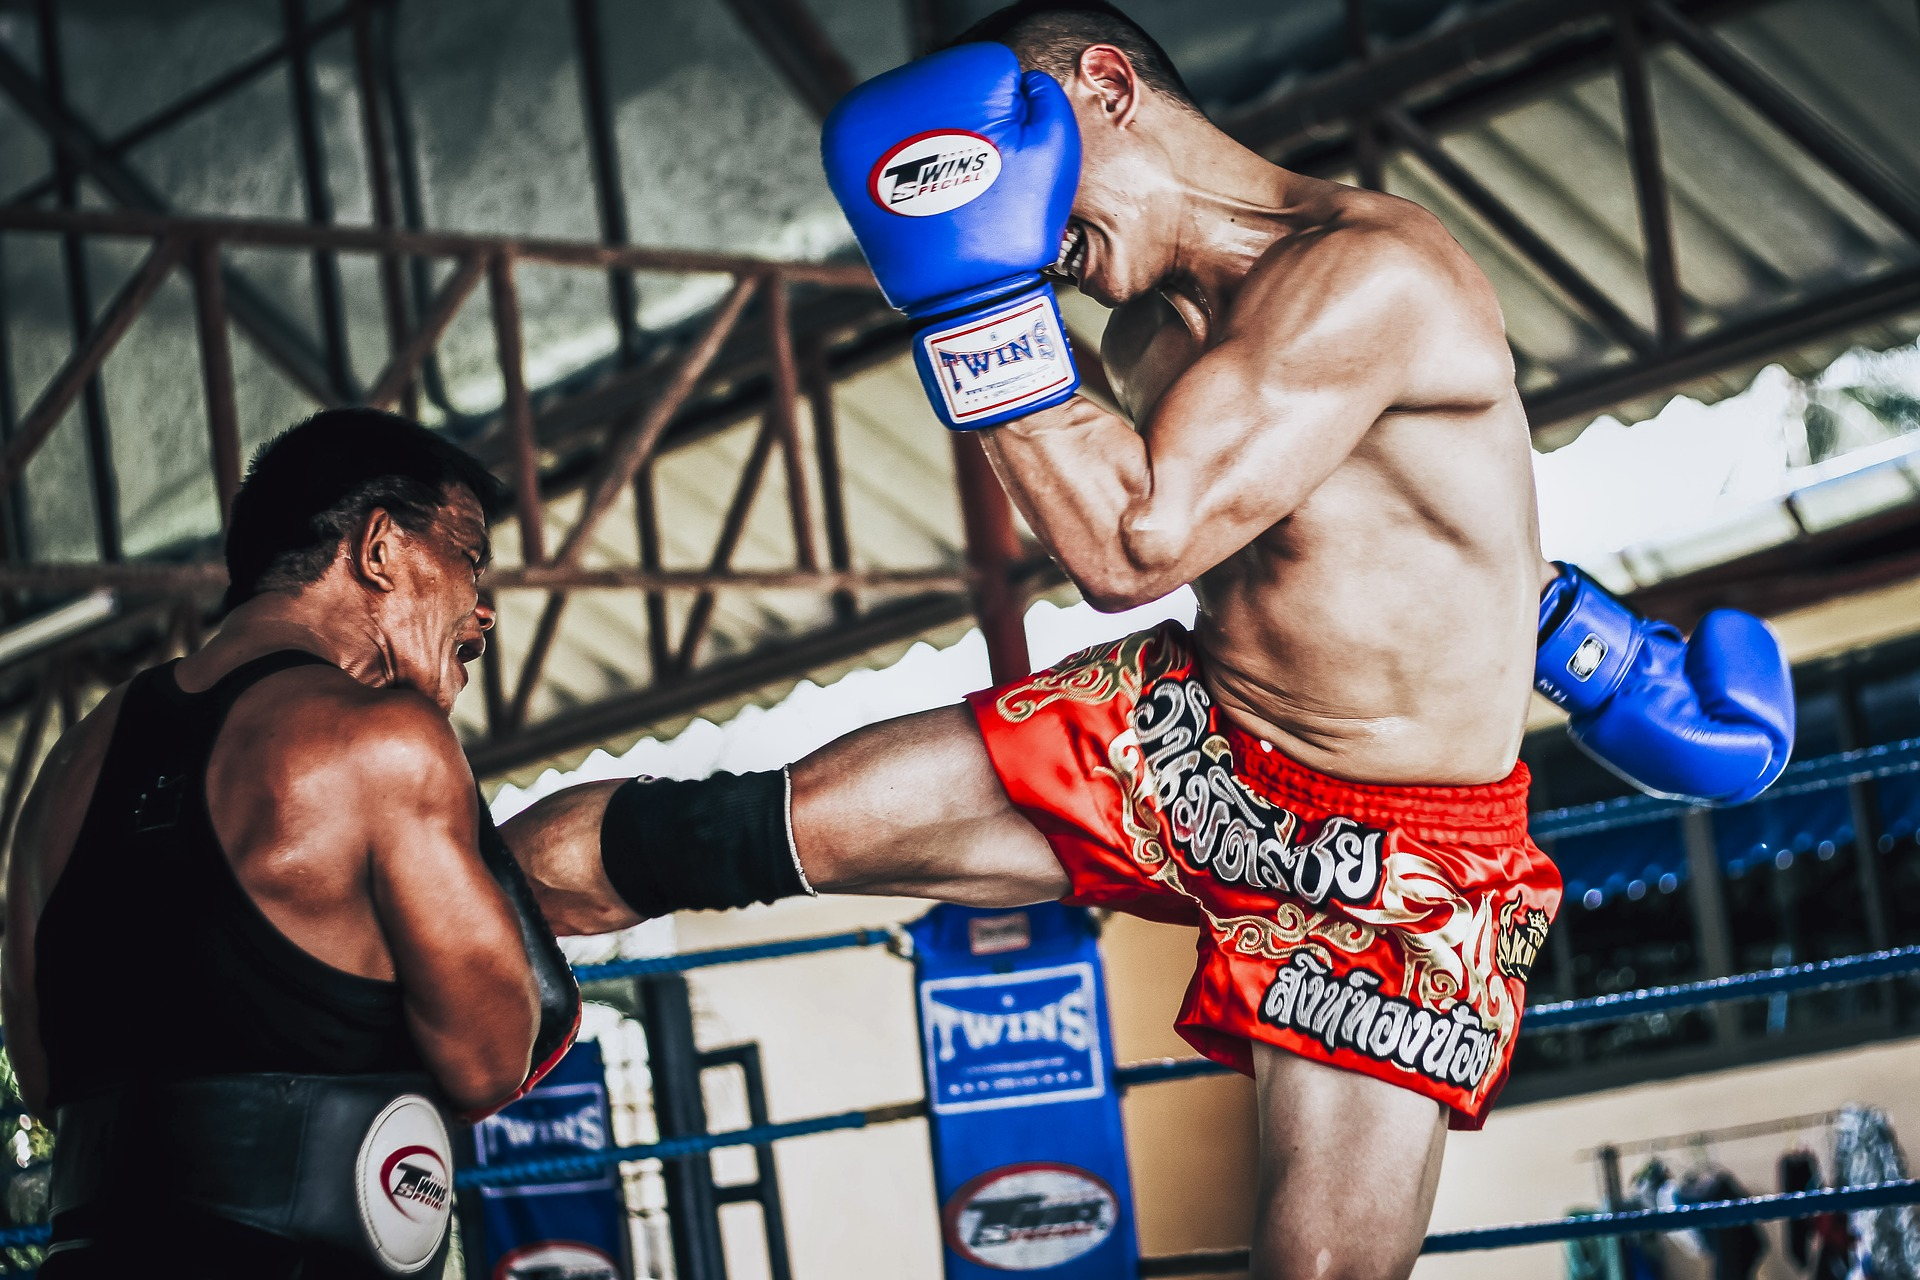 Muay Thai or Boxing - Which is Better?